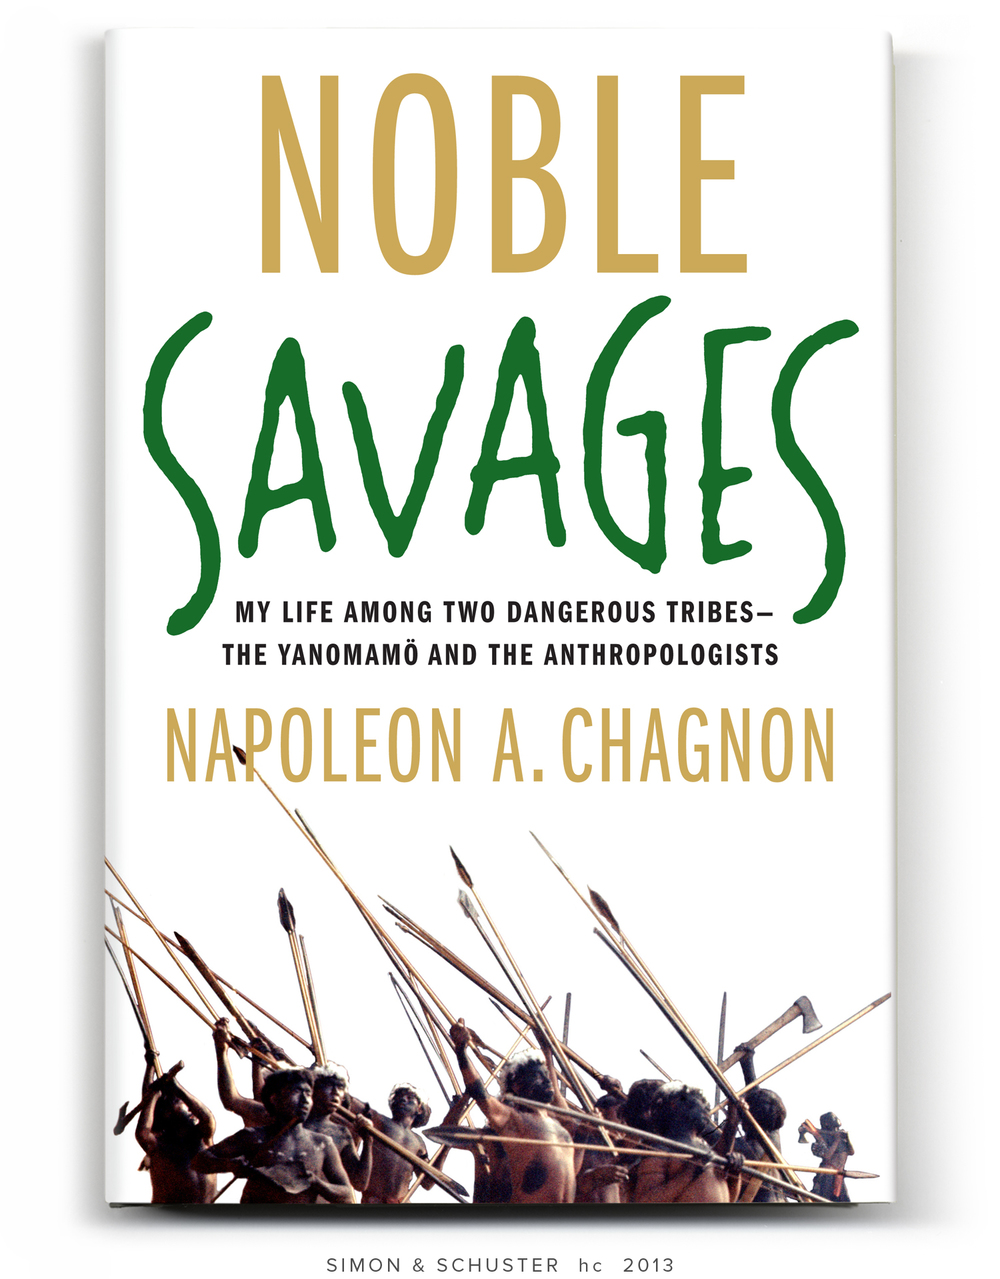 NOBLE-SAVAGES-hc-ss6.jpg